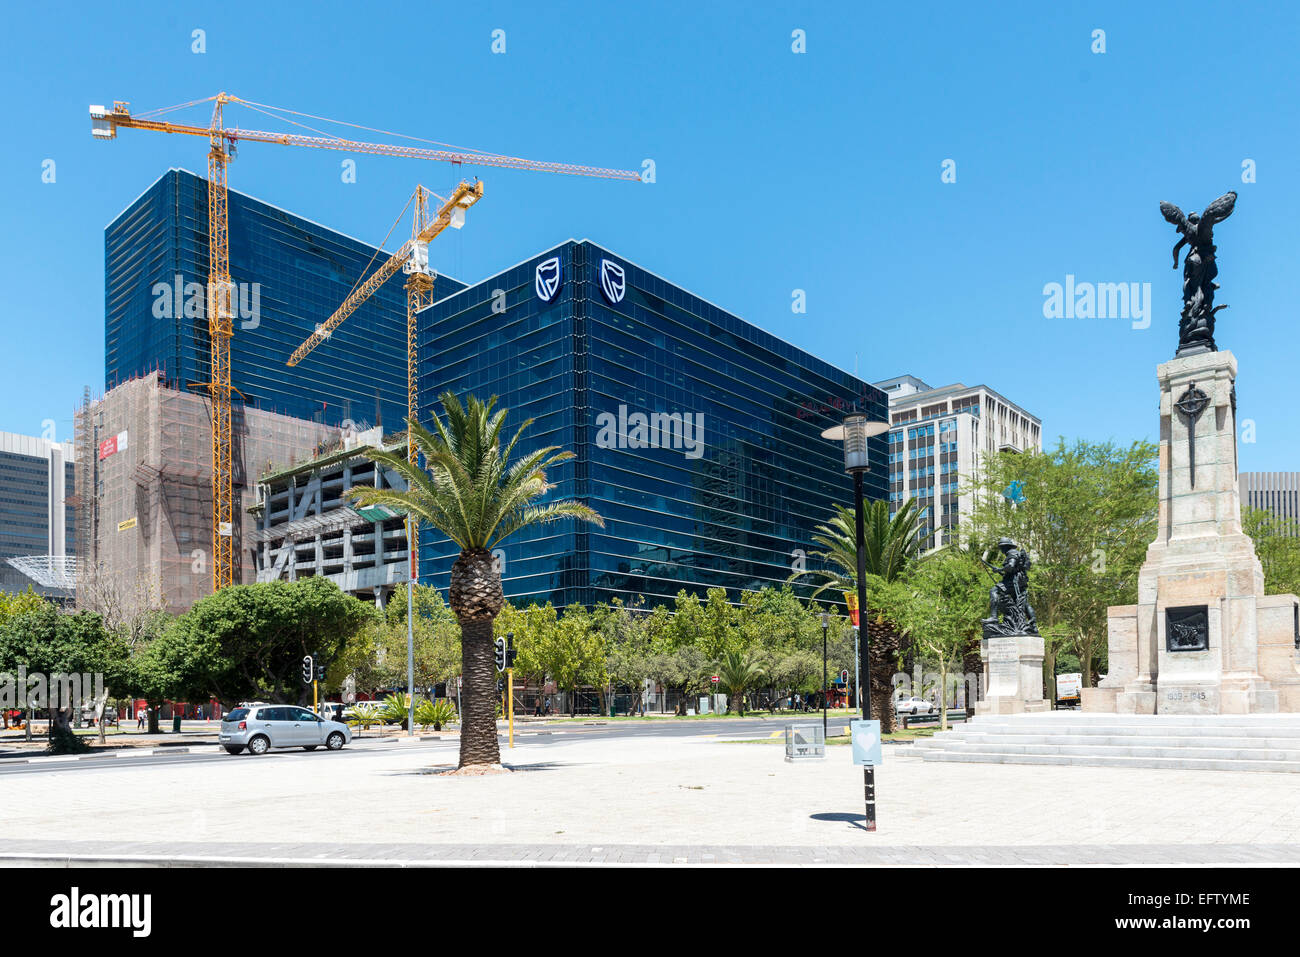 Coen Steytler Roundabout and Standard Chartered Bank building, Cape Town, South Africa - Stock Image